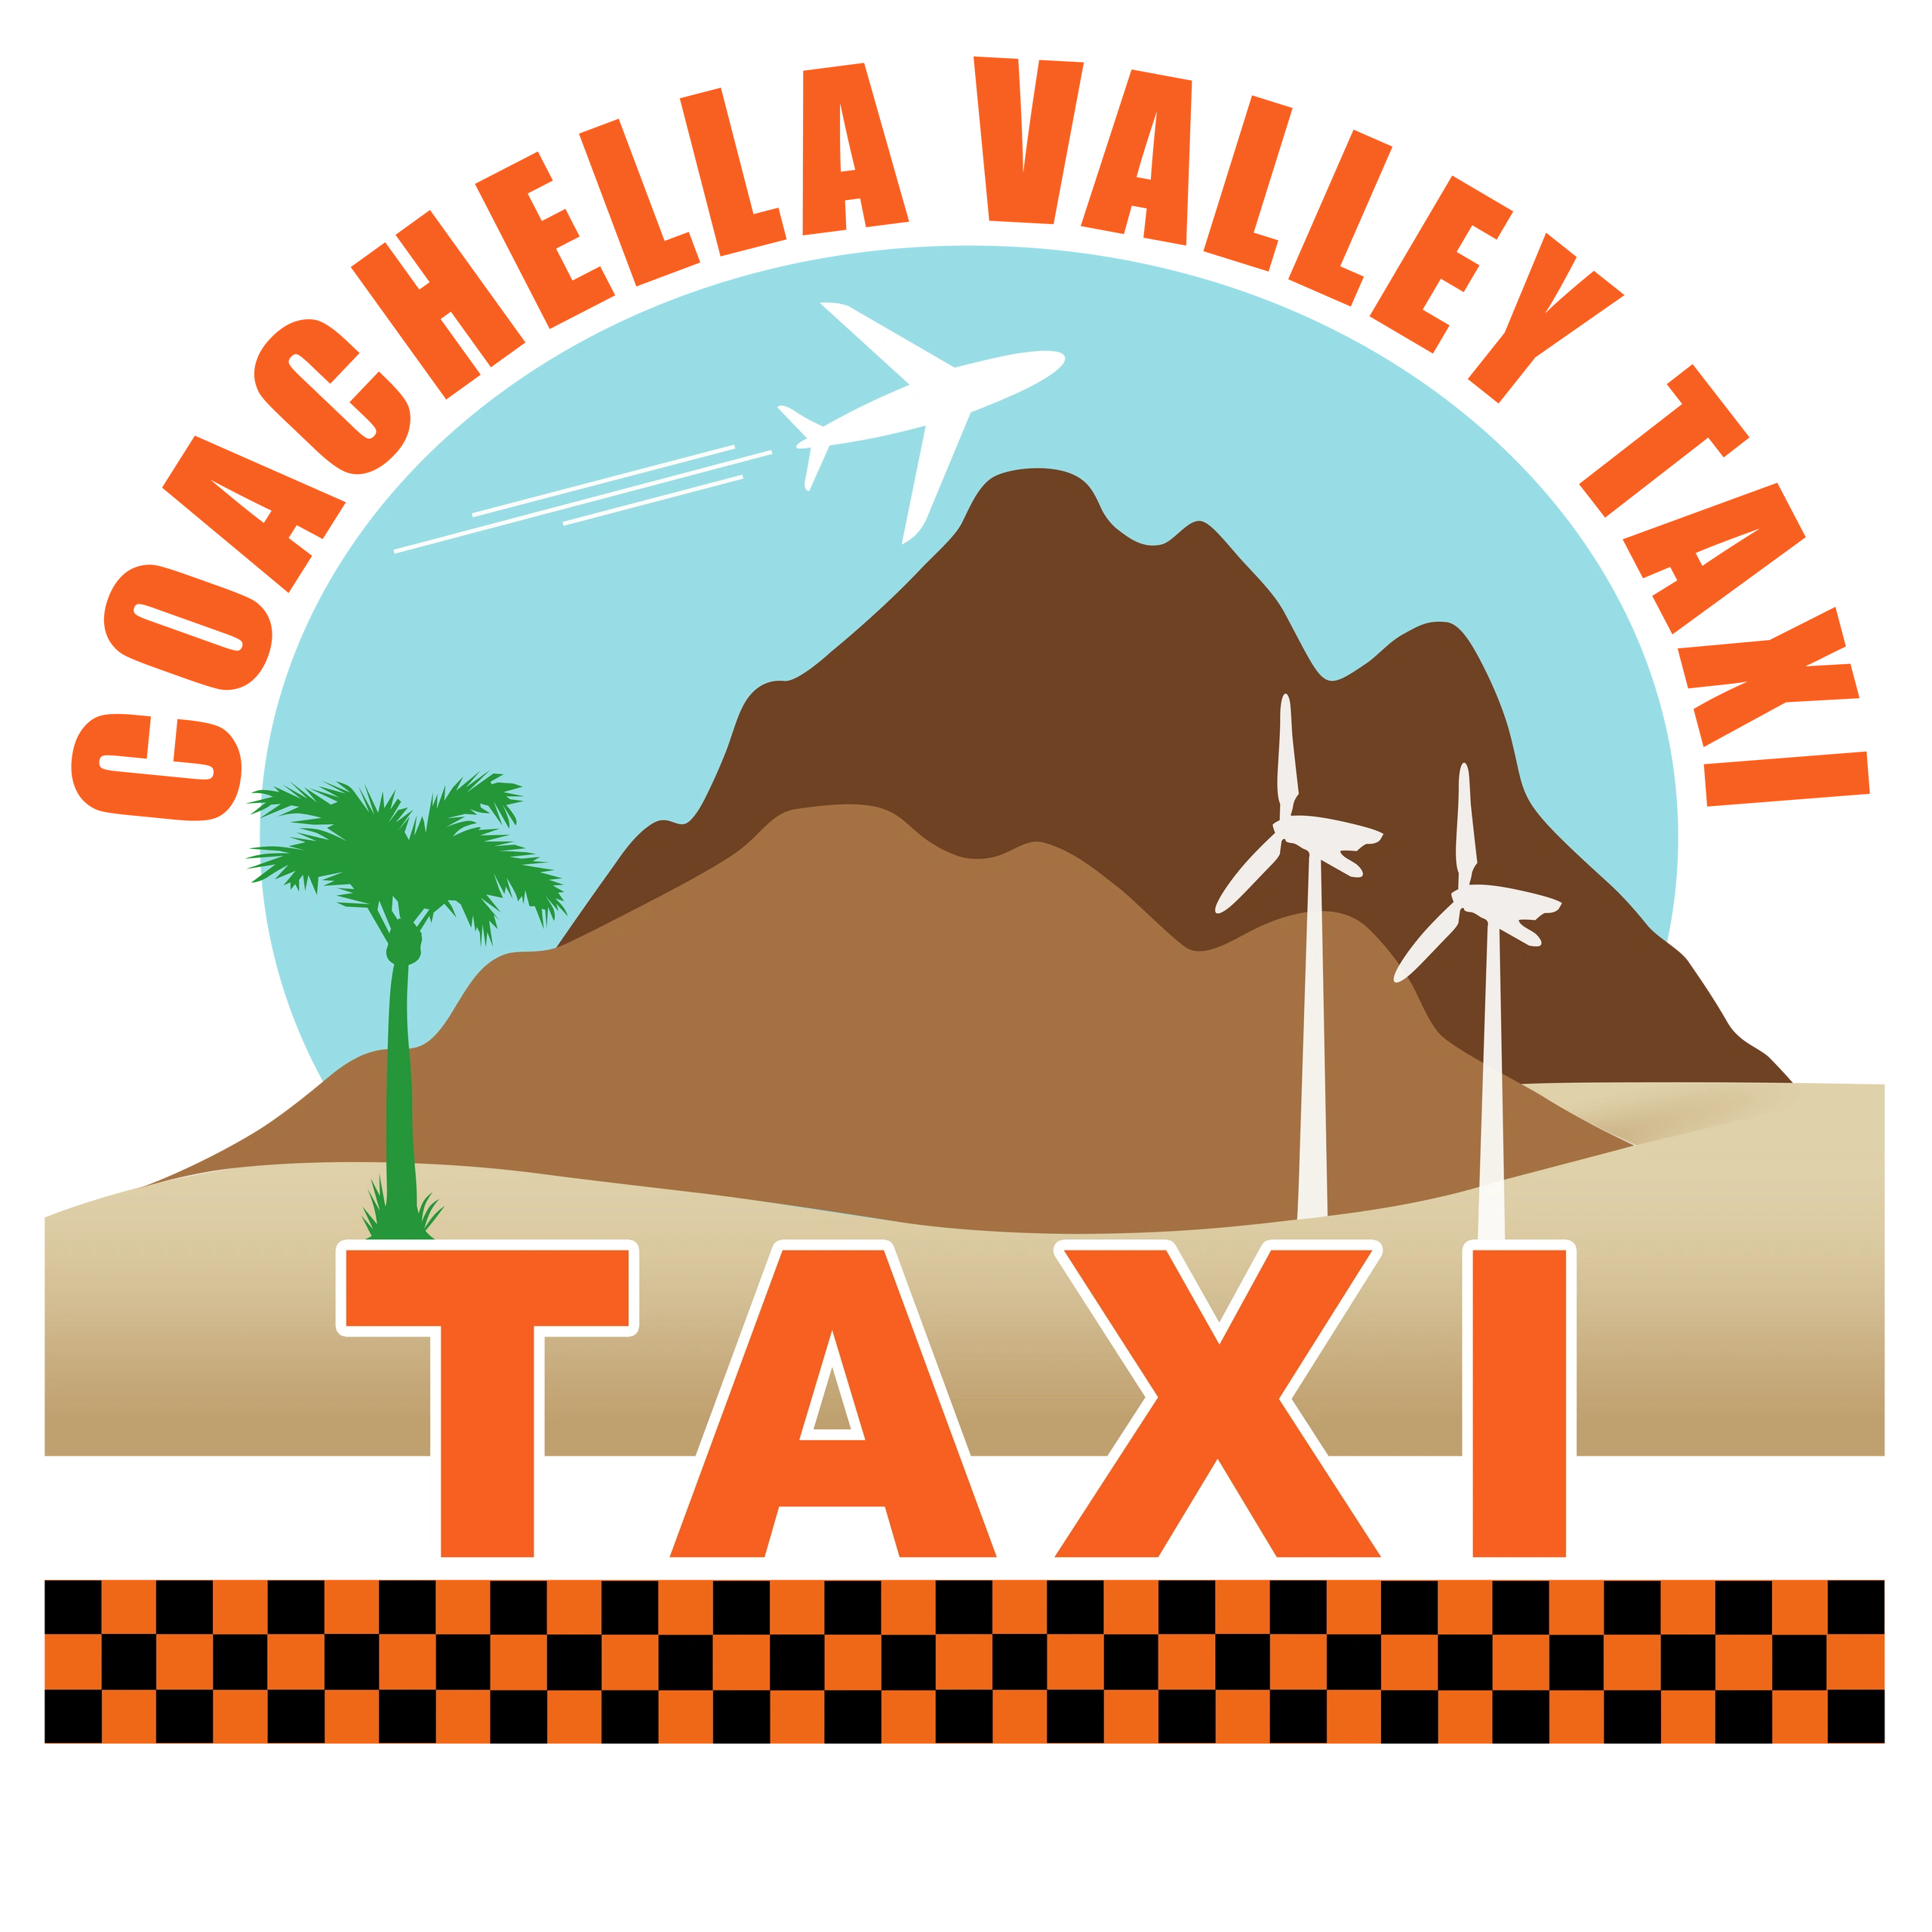 Coachella Valley Taxi Logo Design: Windmills set before the Santa Rosas, airplane above, palm below